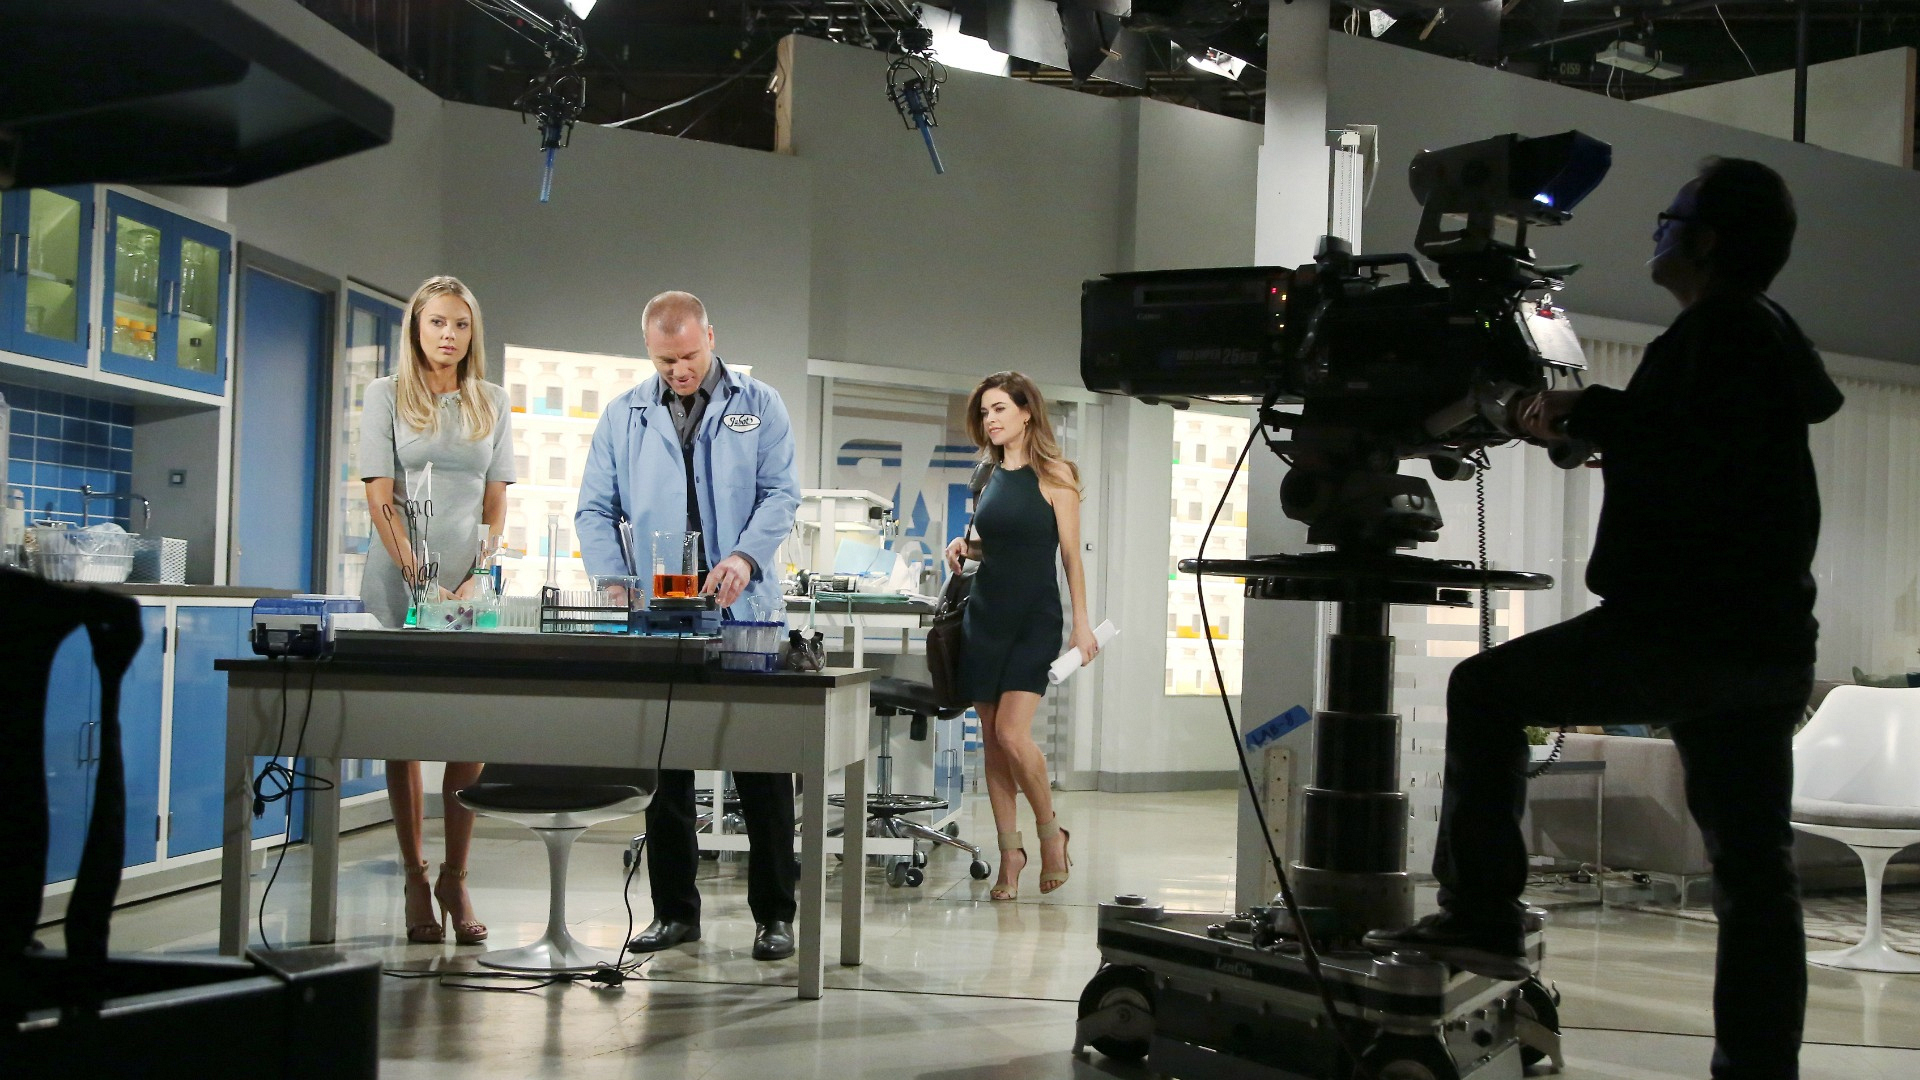 Melissa Ordway, Sean Carrigan, and Amelia Heinle take their places in the lab.